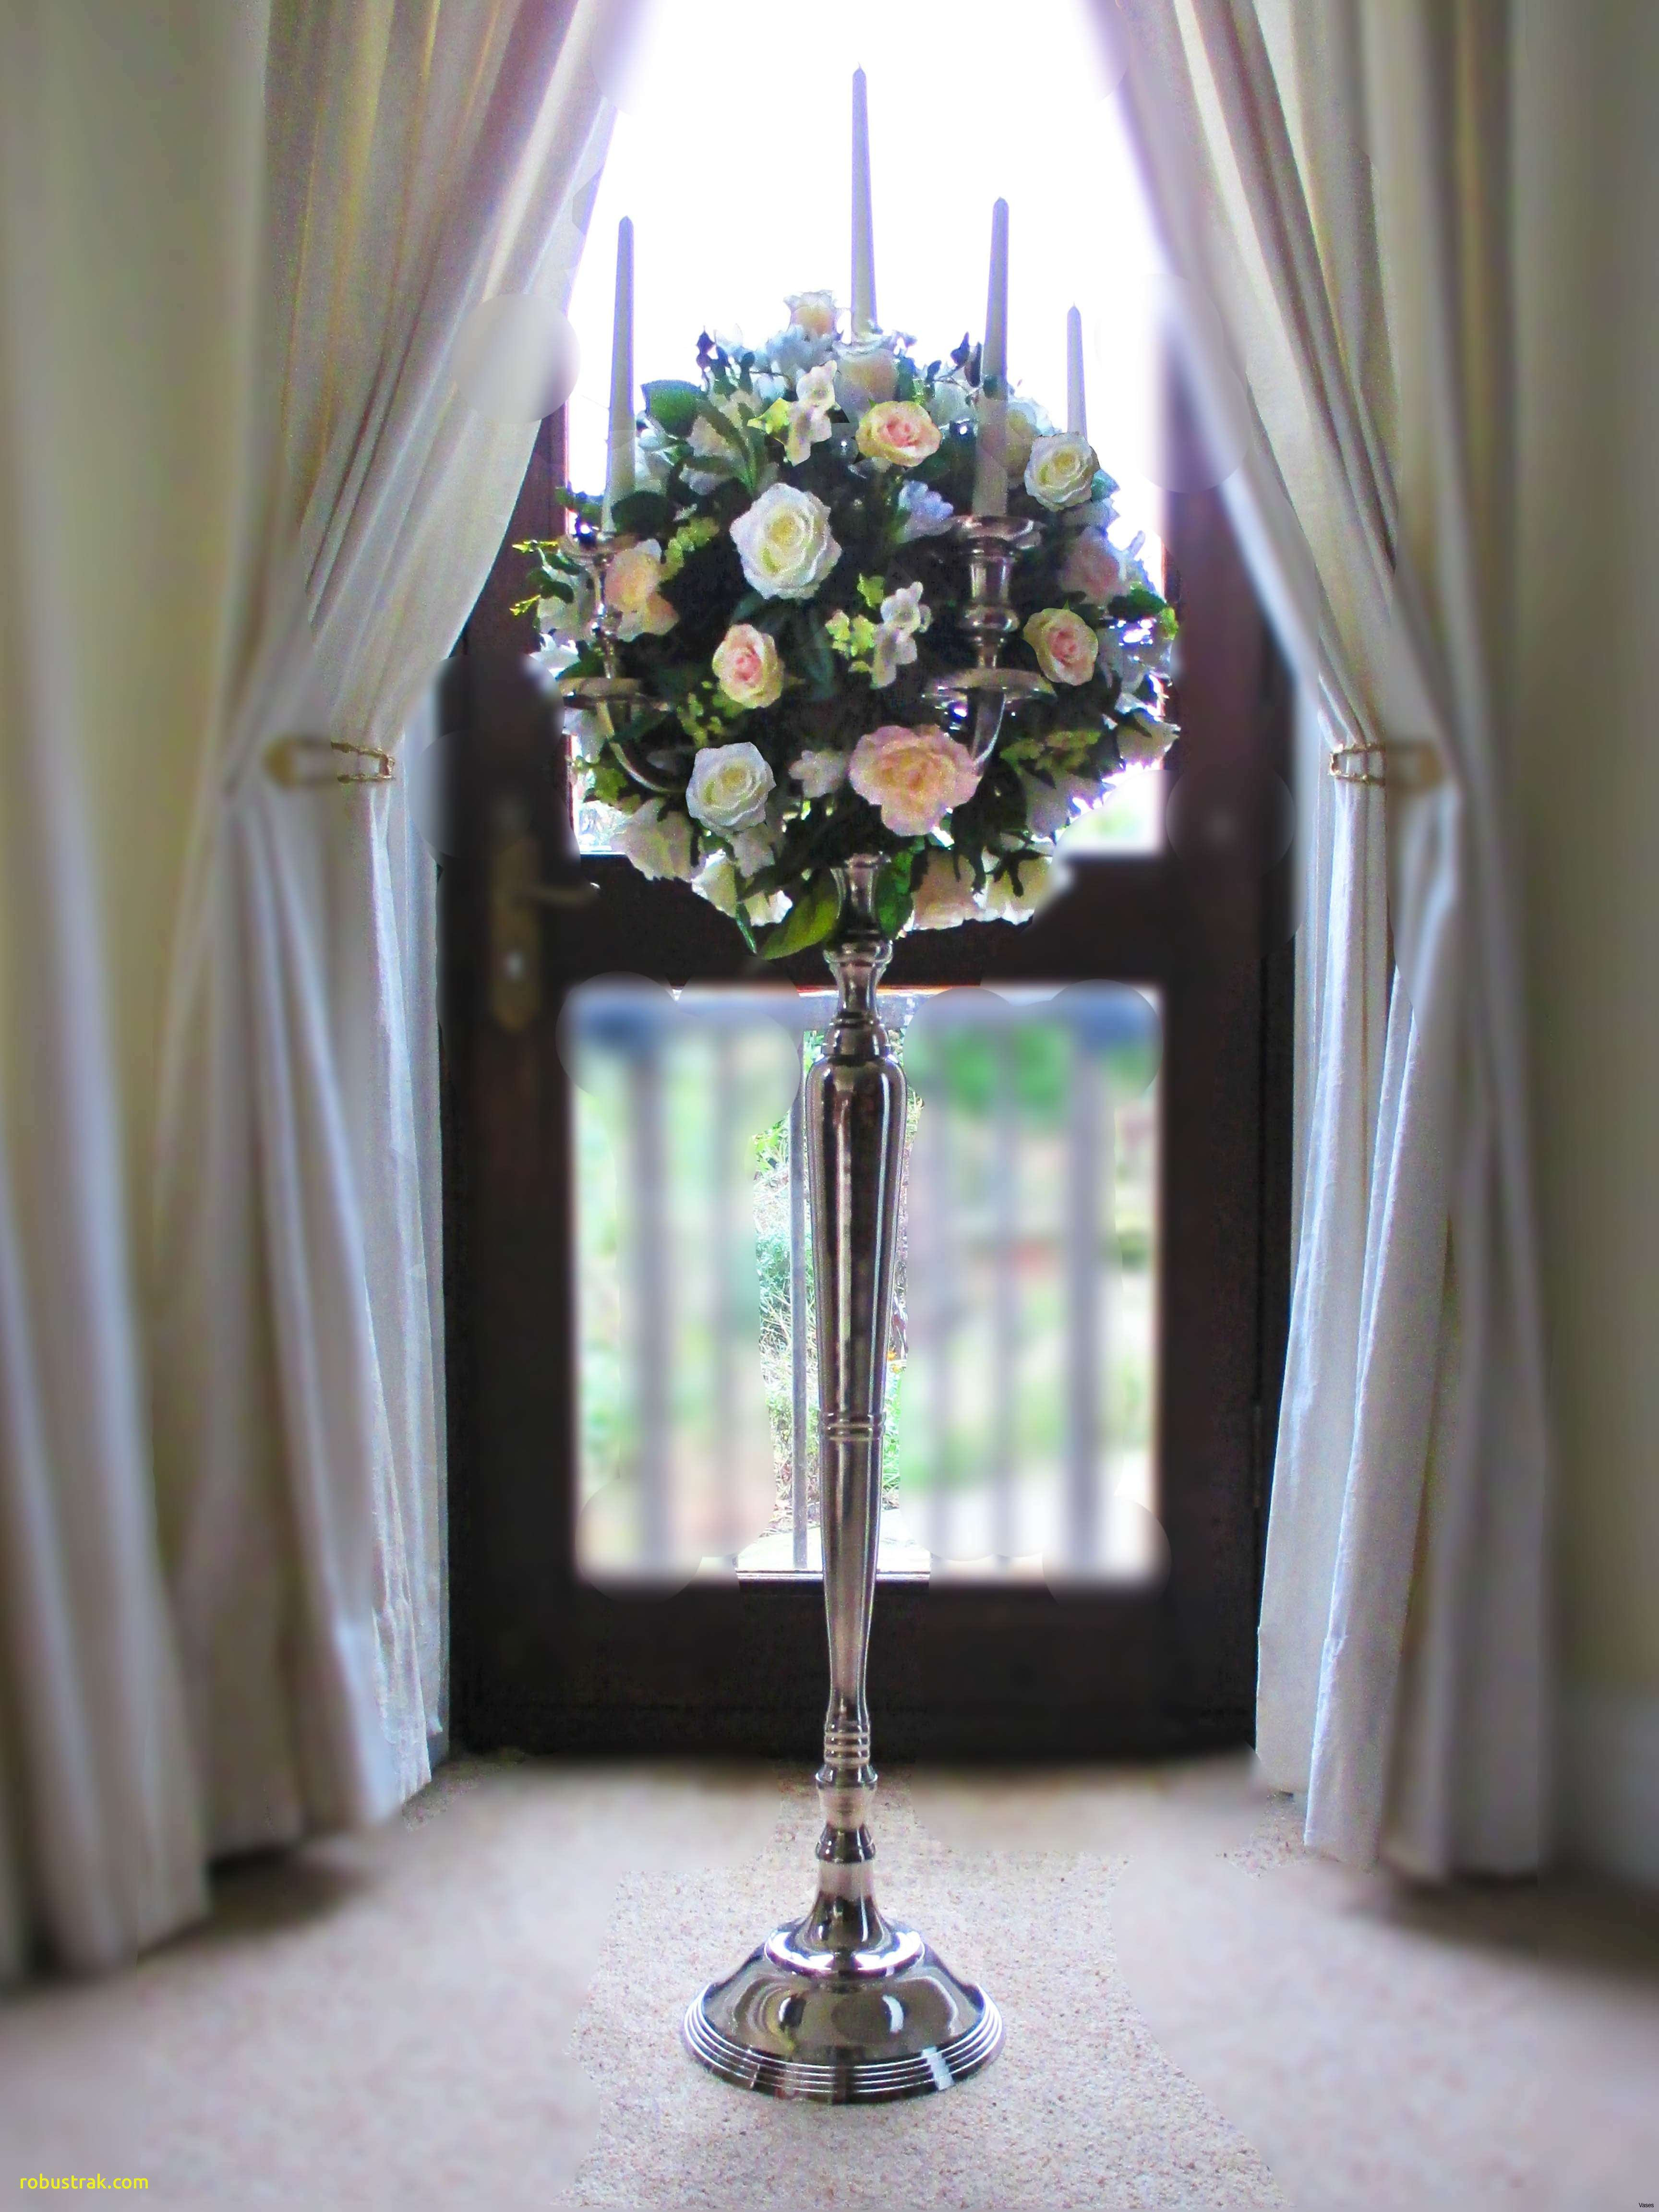 glass candy vases of inspirational wedding decorations silver home design ideas for cheap wedding bouquets packages 5397h vases silver vase leeds i 0d scheme floral wedding bouquets